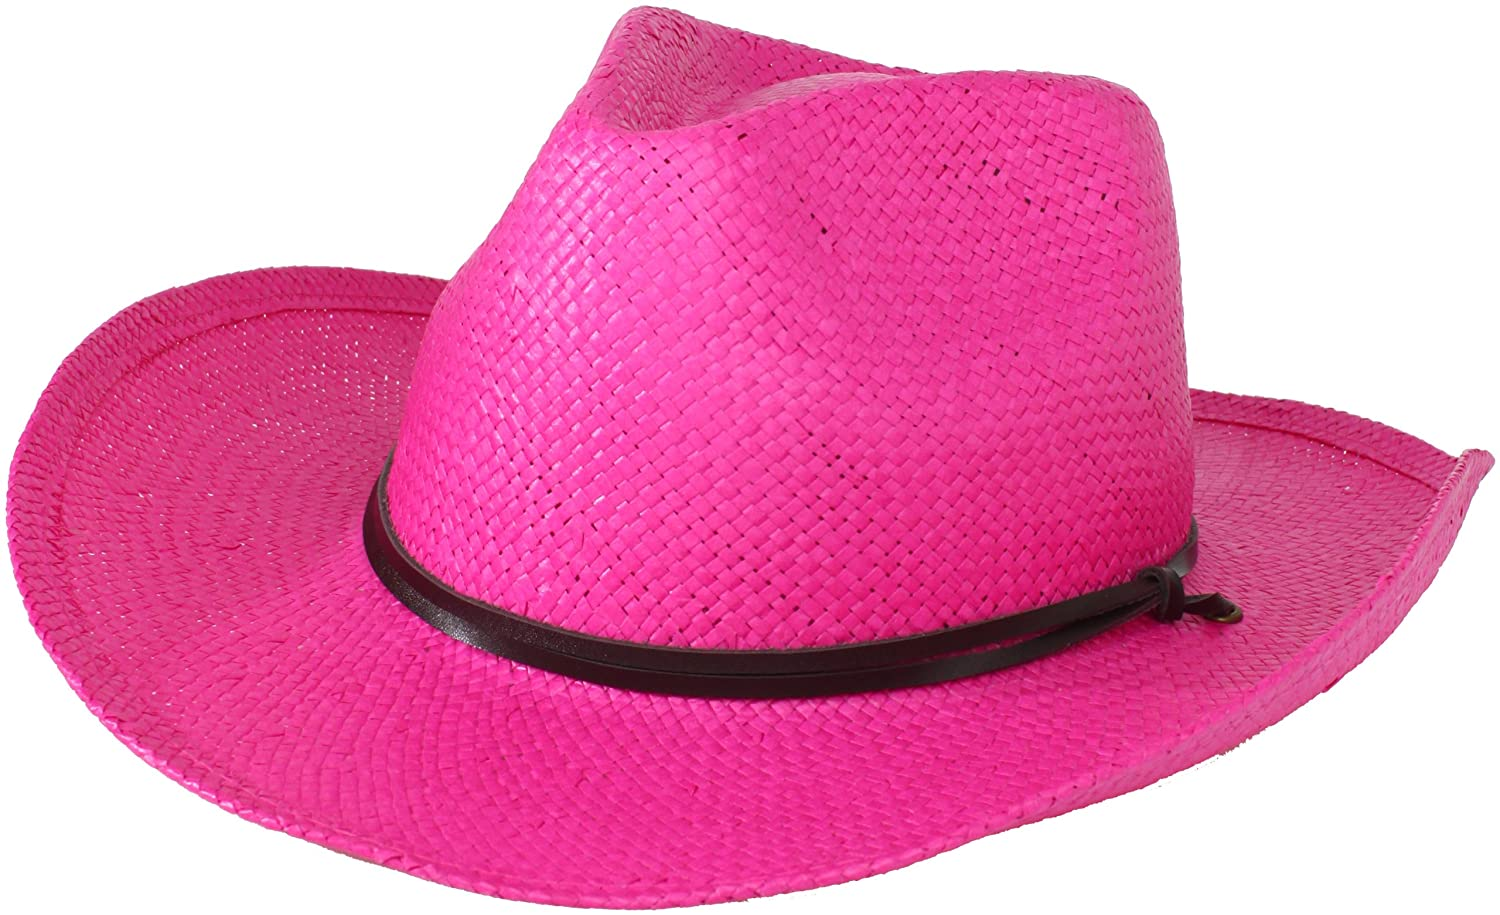 San Diego Hat Company Women's Soft Toyo Paper Cowboy Hat Bright Pink One Size stclbrtpnk